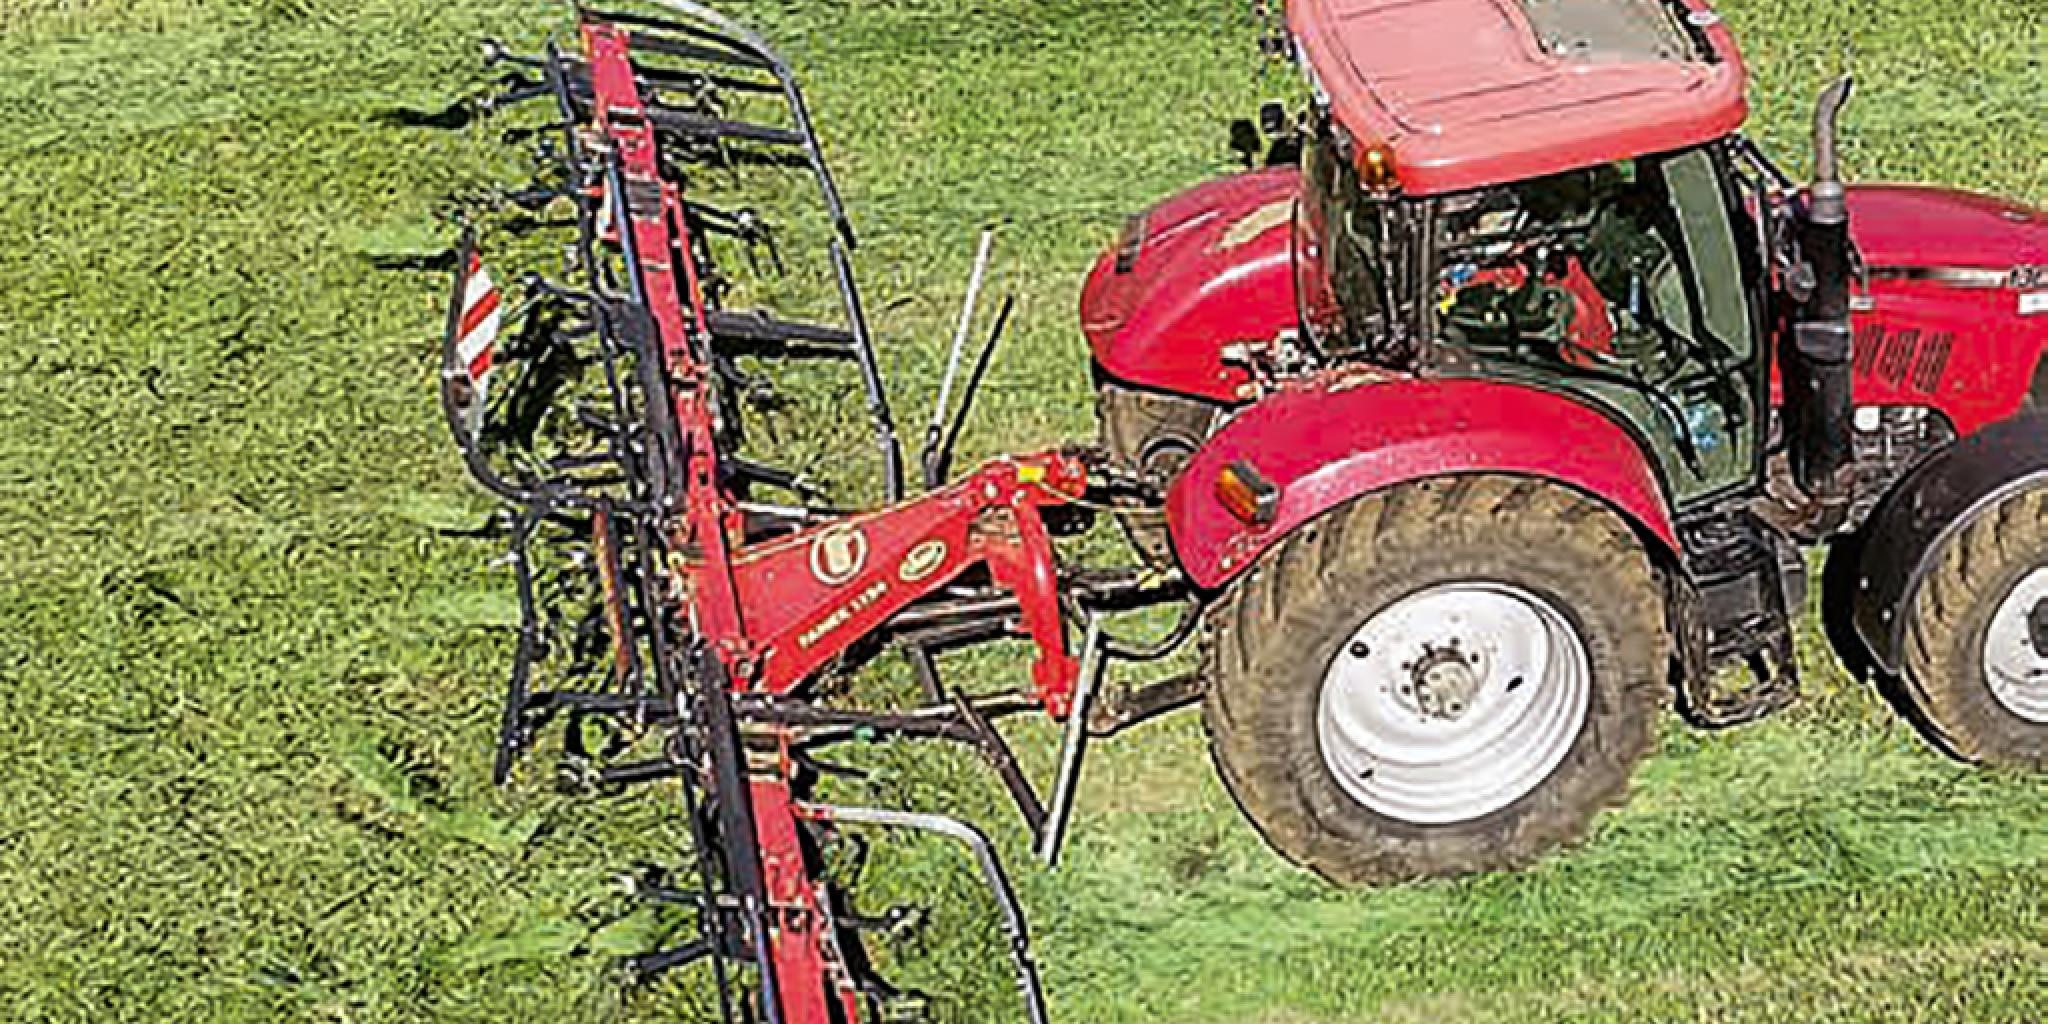 Vicon Fanex 1124 and 1124C tedders: